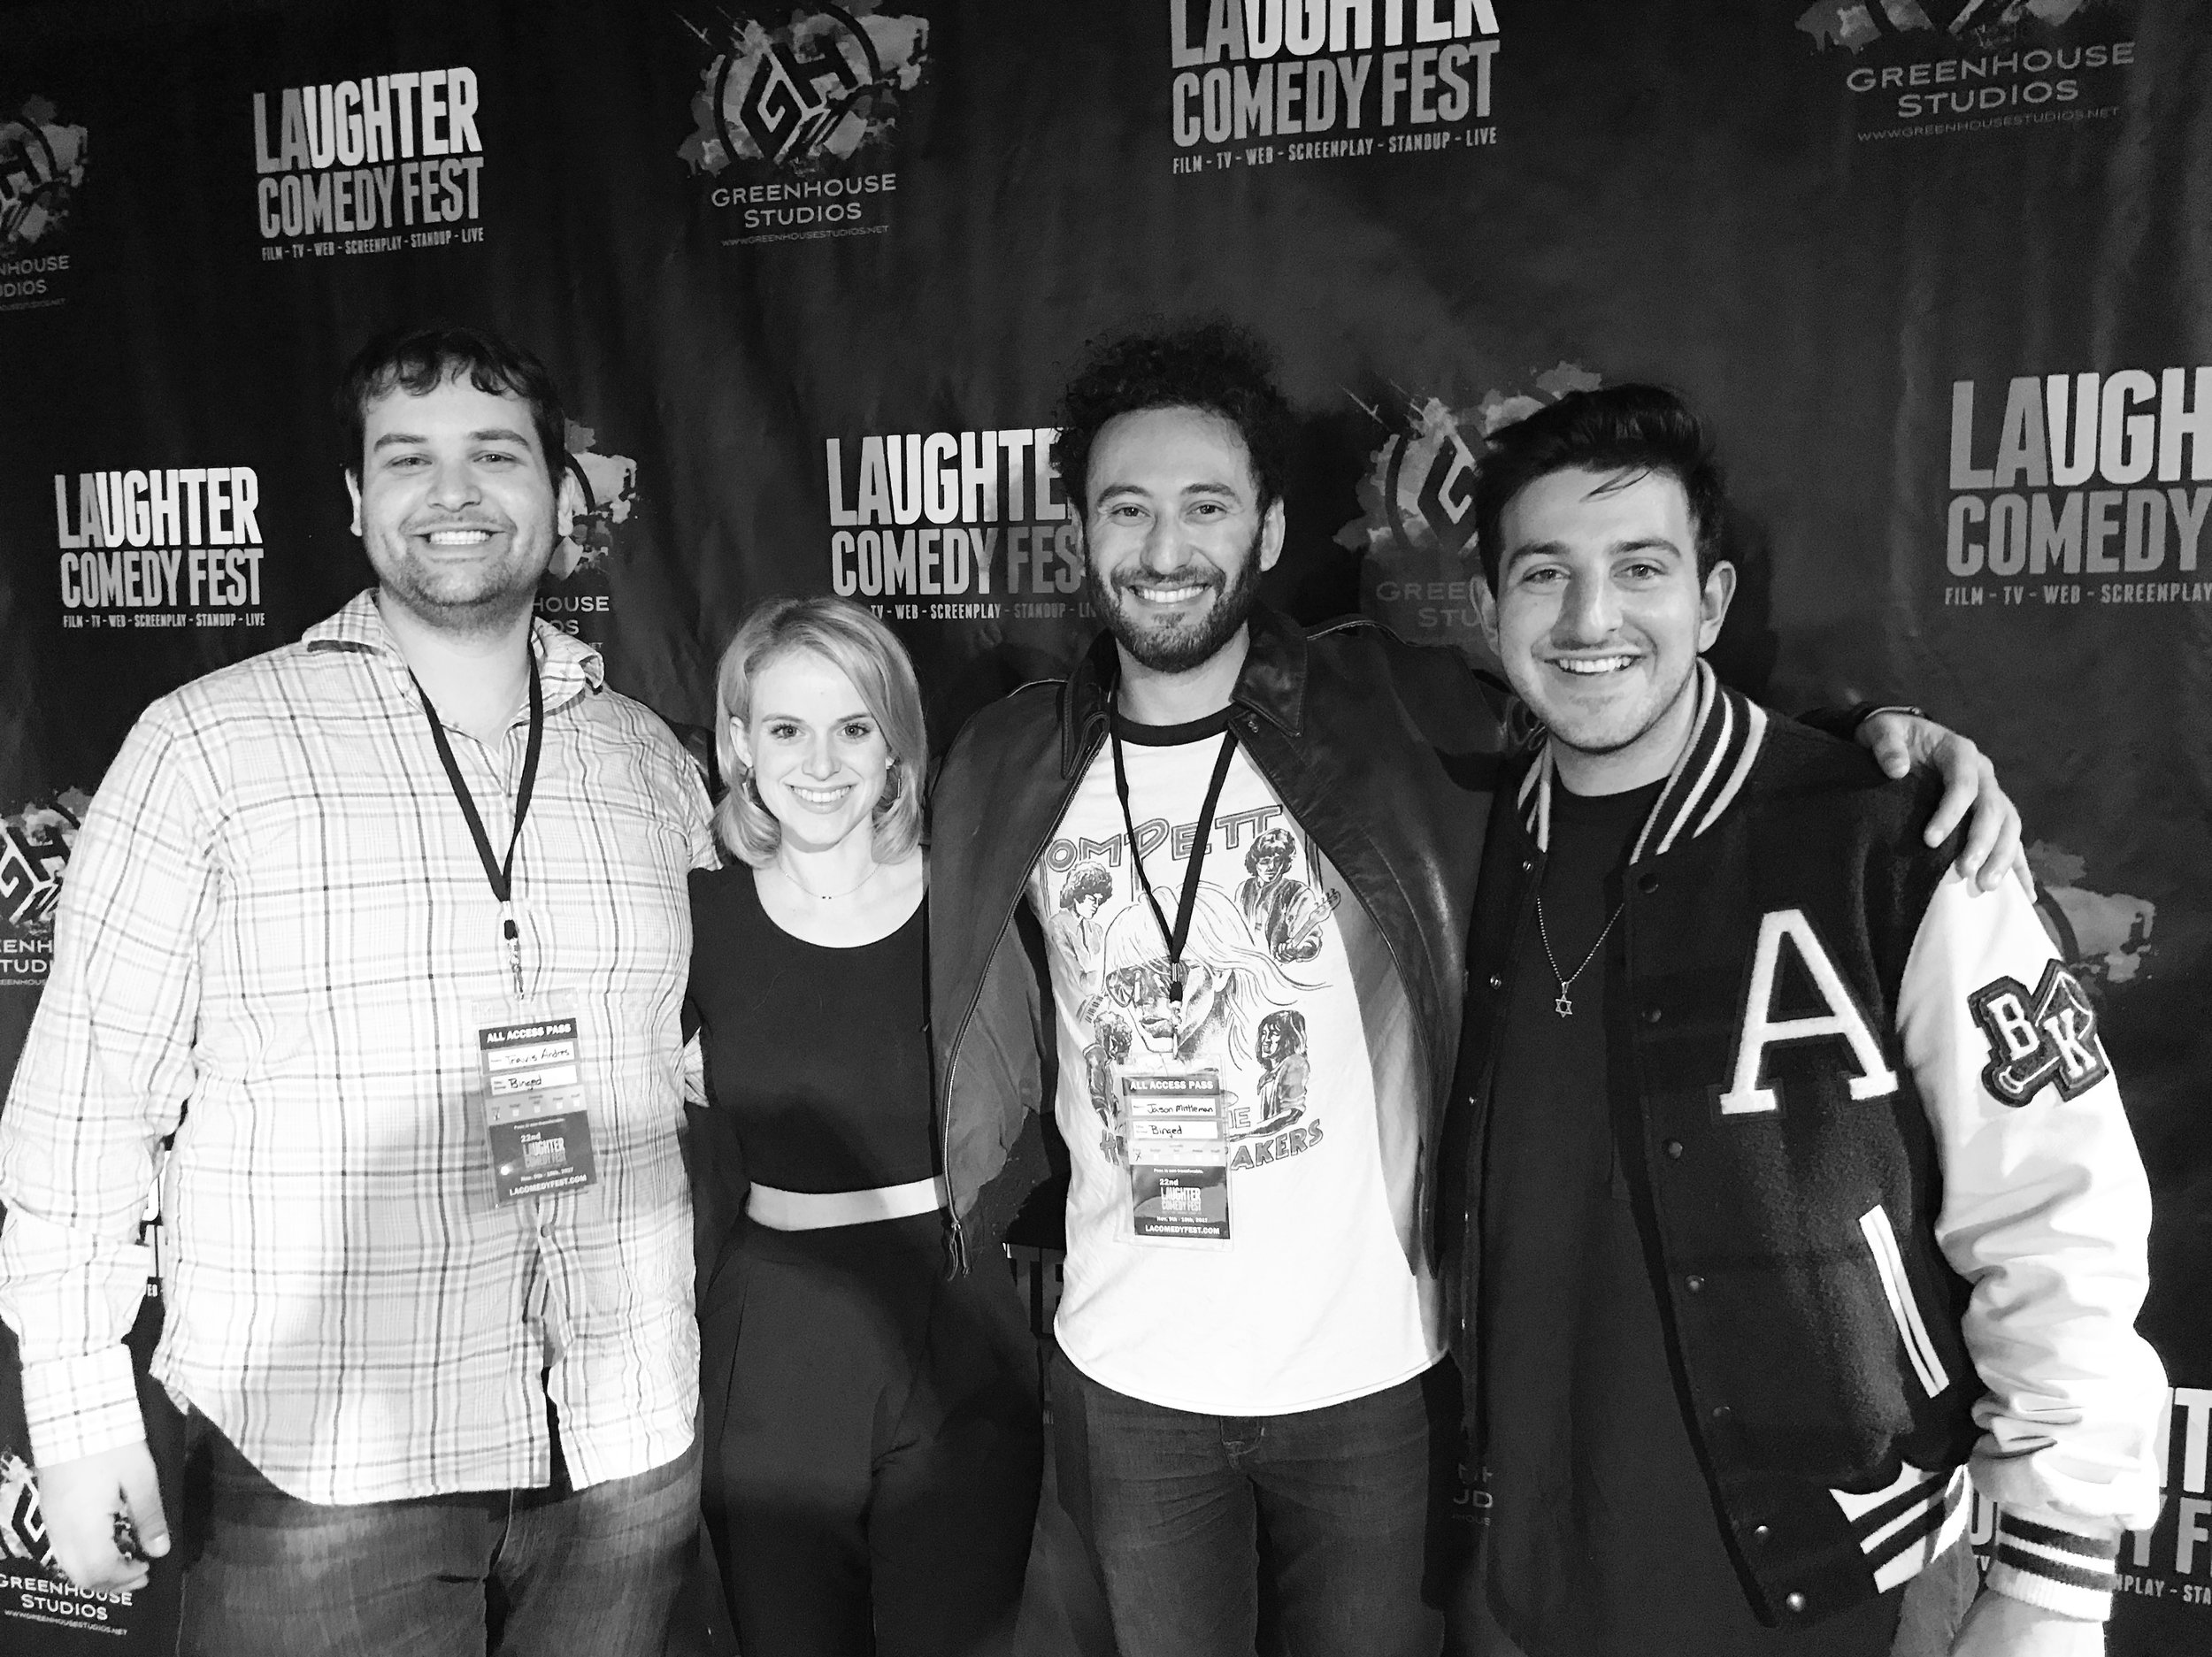 Travis Andres, Carlie Craig, Jason Mittleman and Julien Ari attend LA Comedy Fest where Binged earns the Audience Choice Award